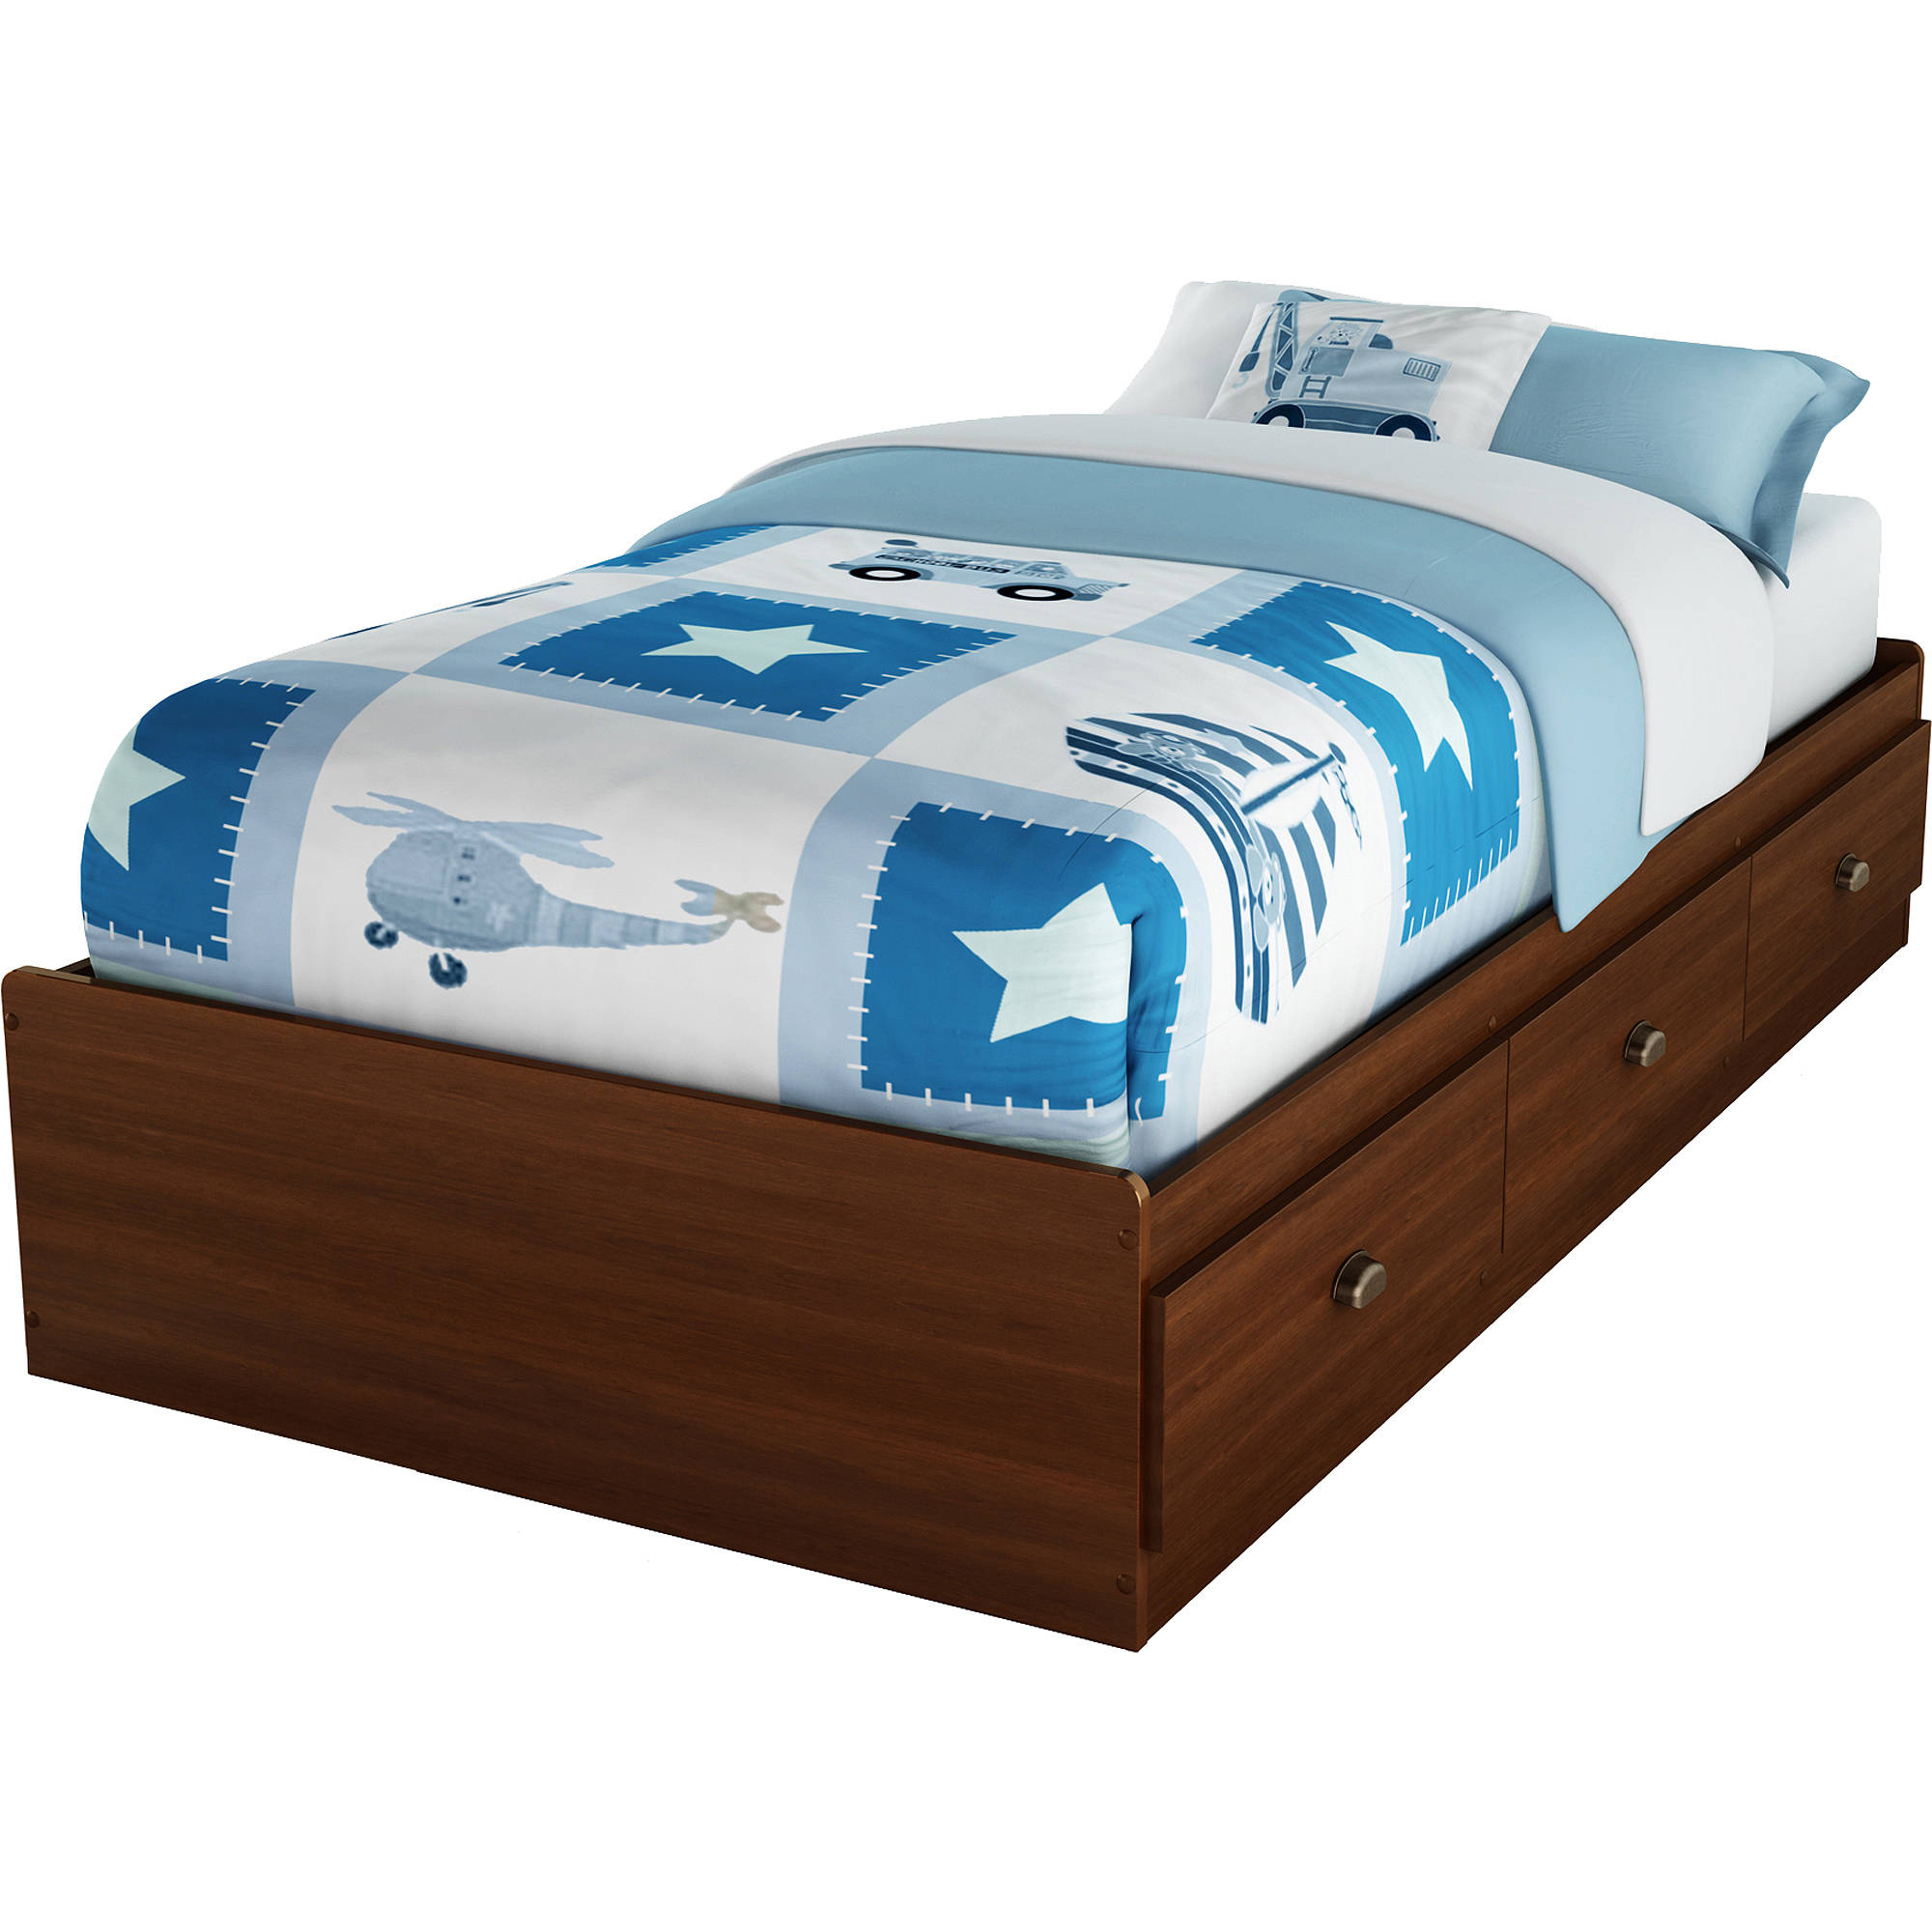 South Shore Willow 3-Drawer Storage Bed, Twin, Multiple Finishes